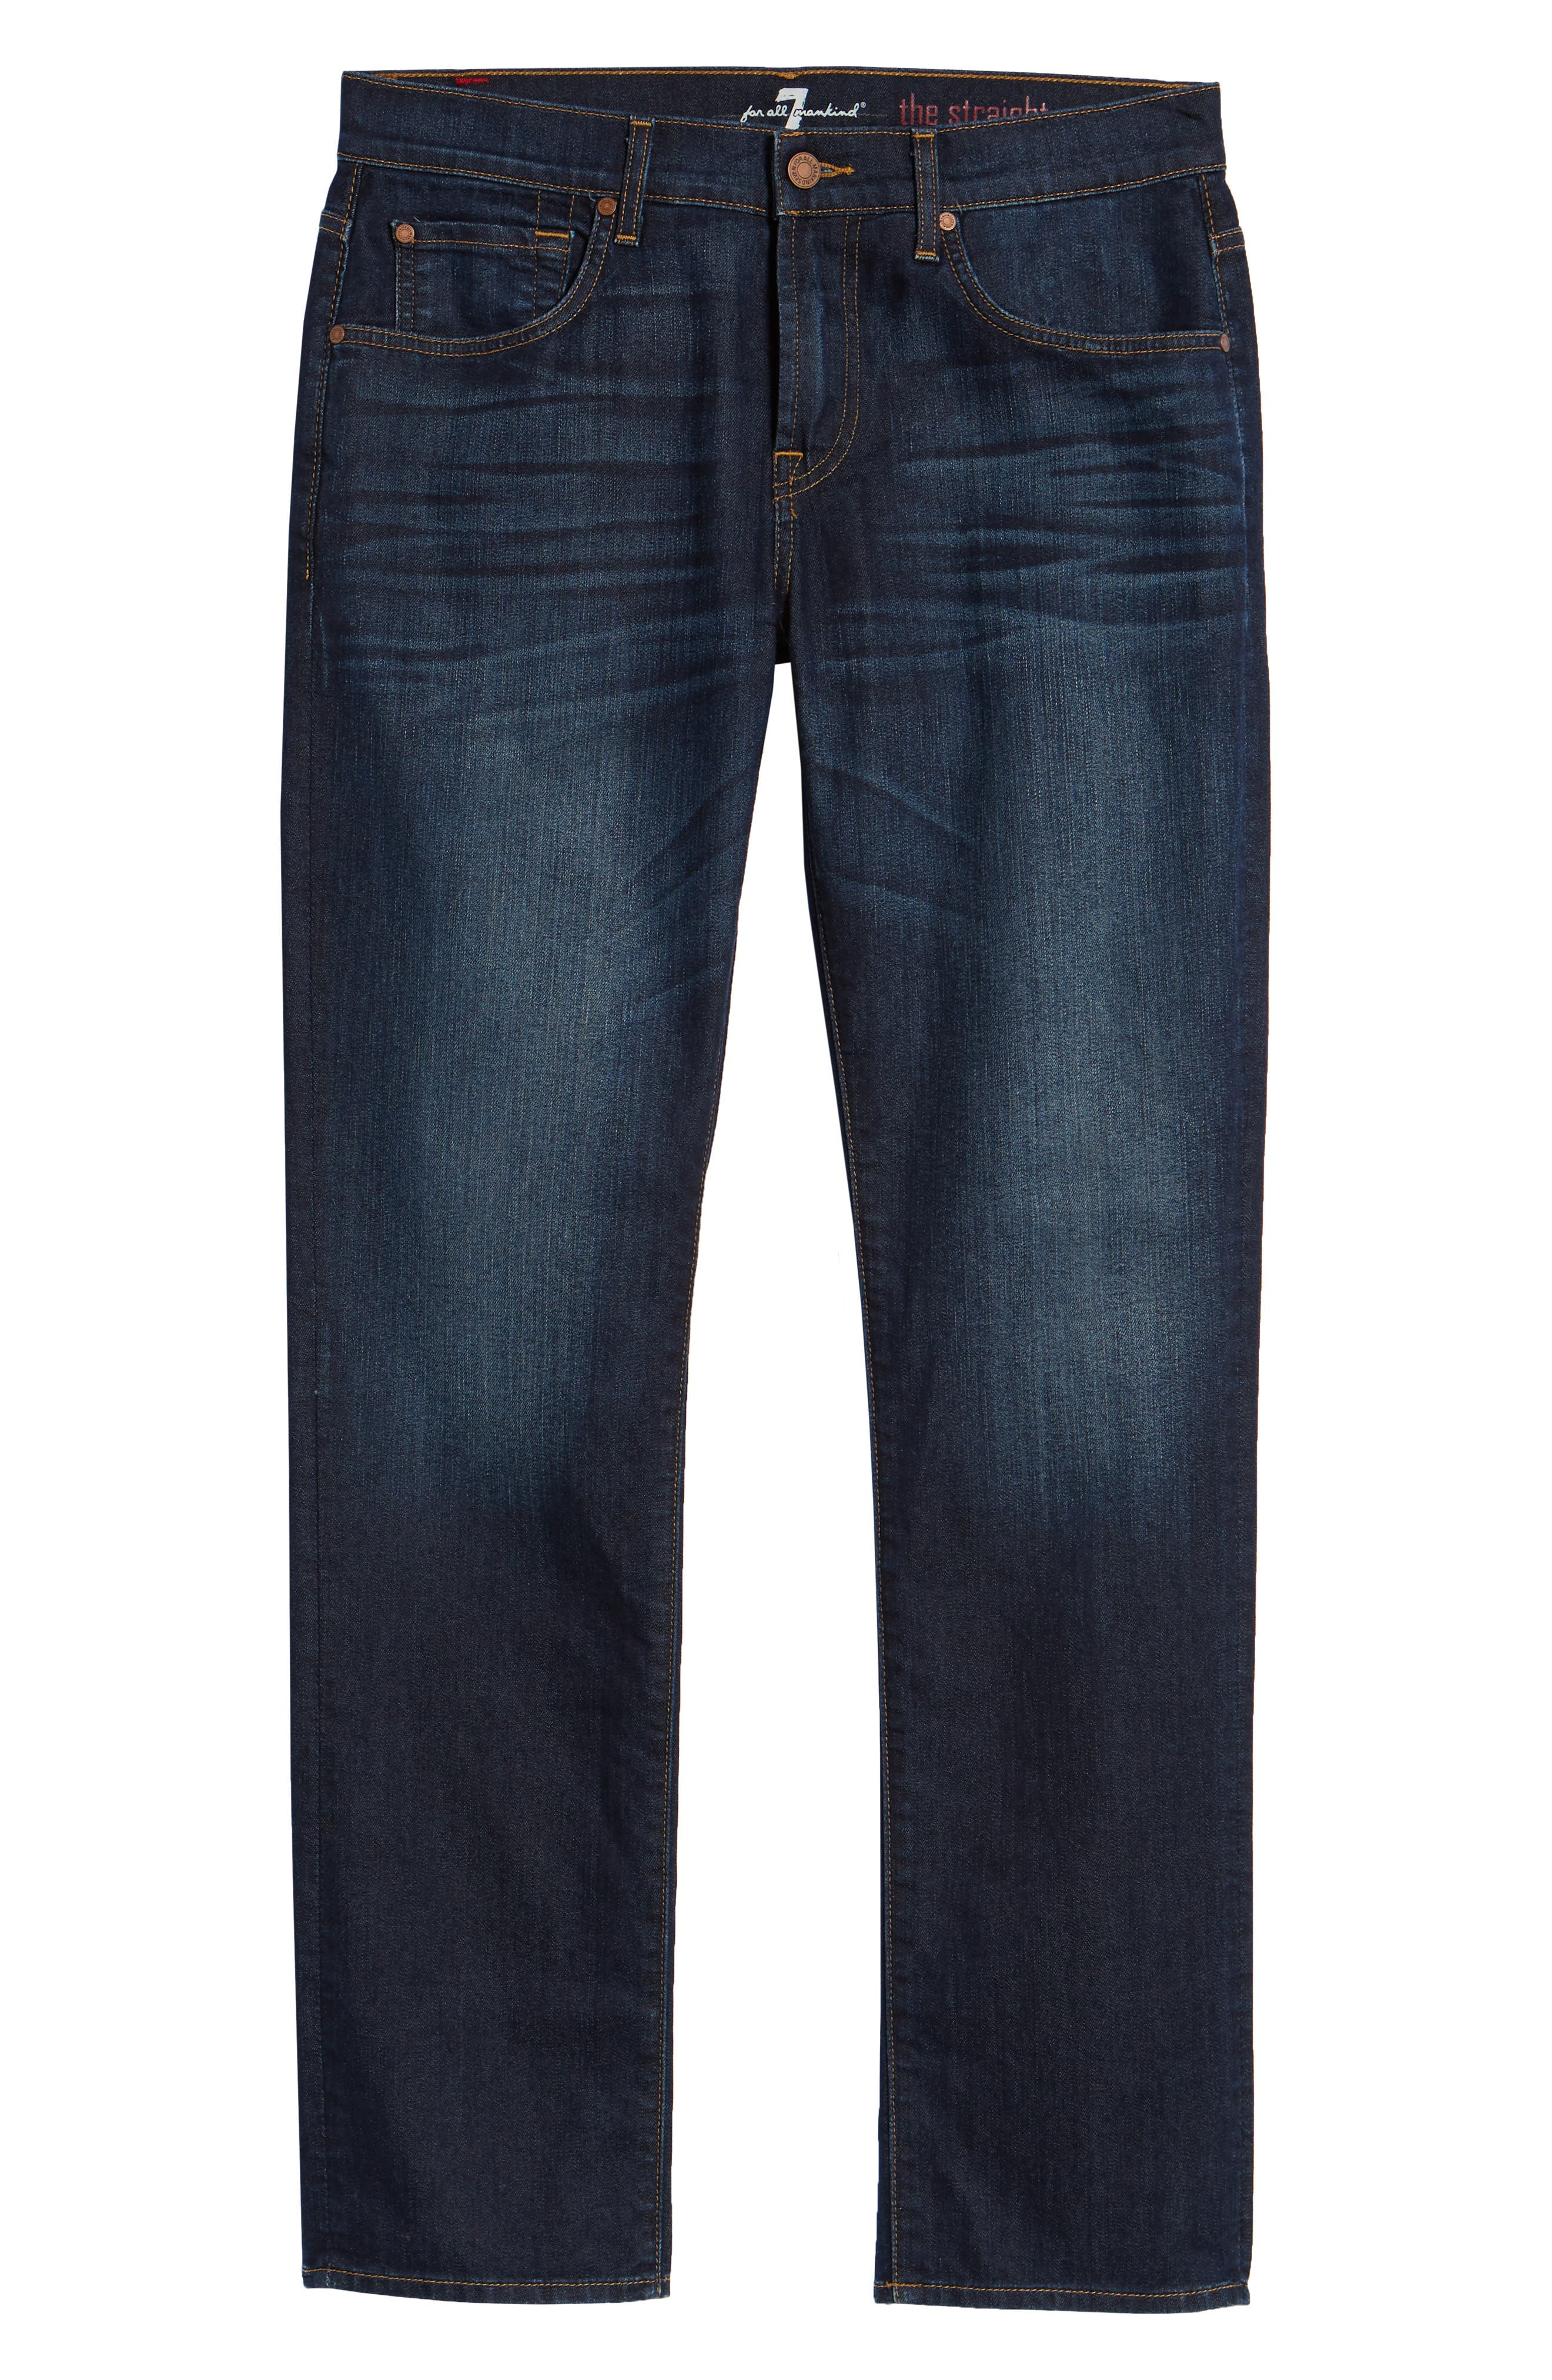 7 FOR ALL MANKIND<SUP>®</SUP>, The Straight Airweft Slim Straight Leg Jeans, Alternate thumbnail 2, color, 400